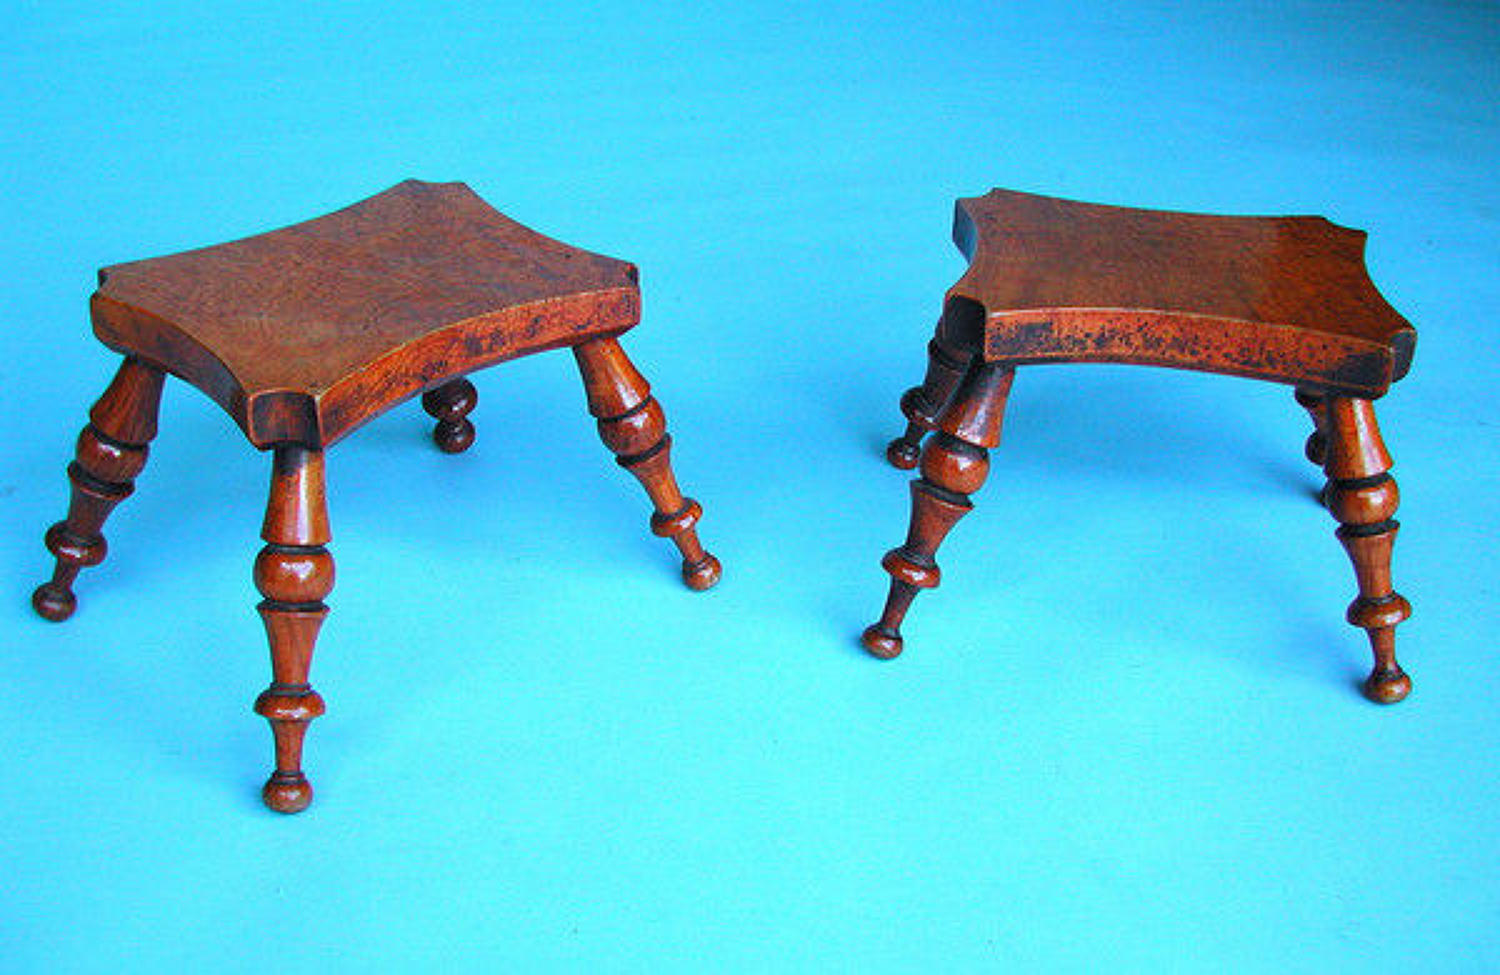 Pair of 19thc Antique Burr Ash Candlestands .  English. C1840-60.